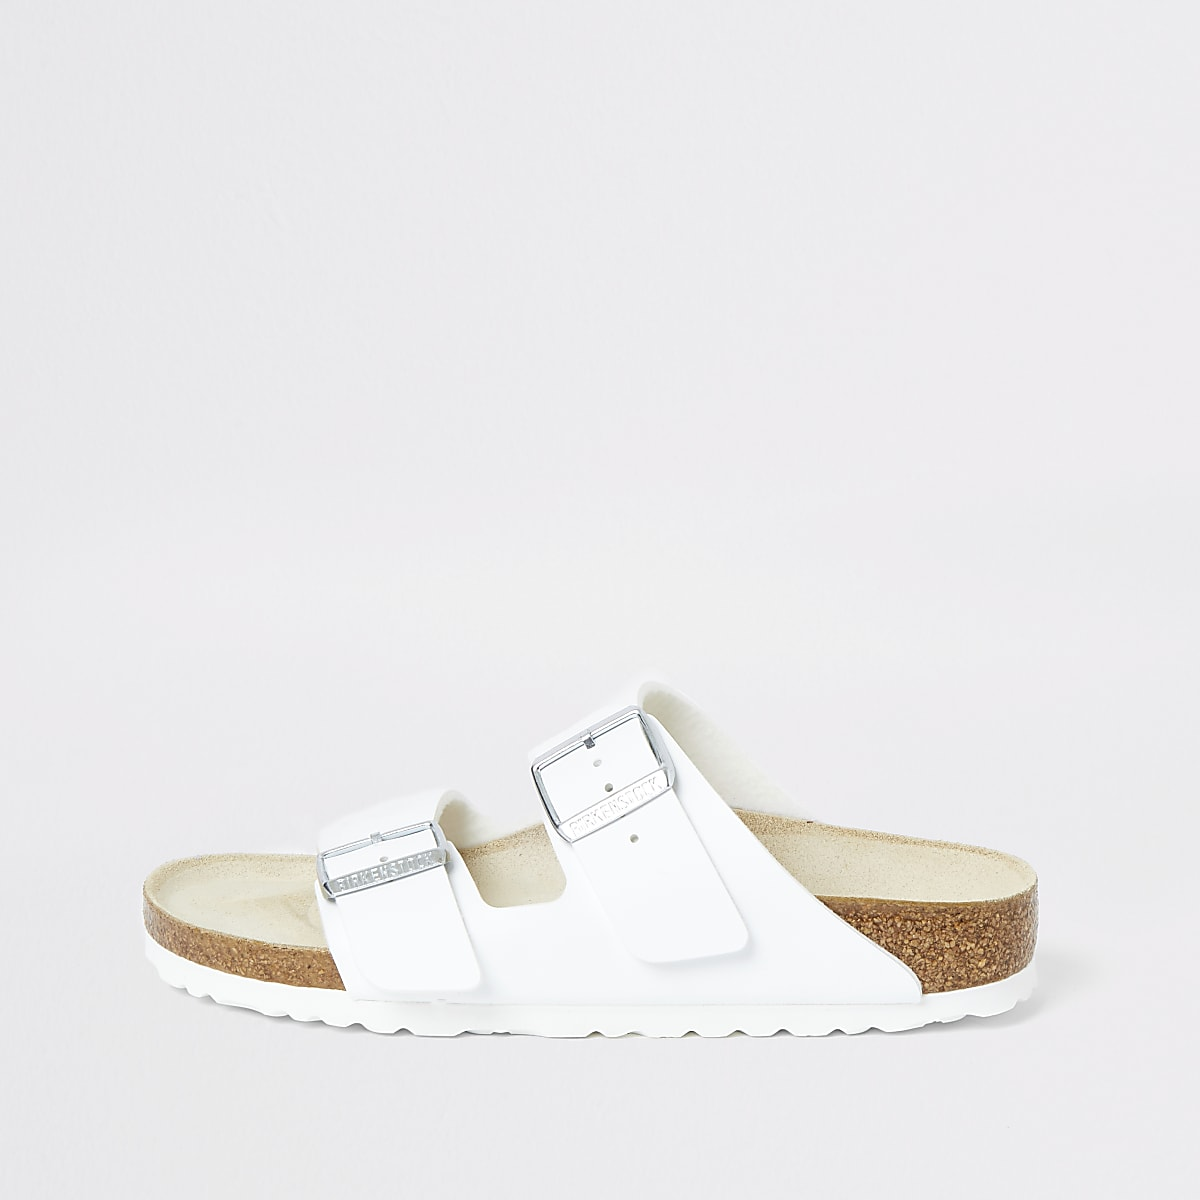 Birkenstock Arizona white two strap sandals